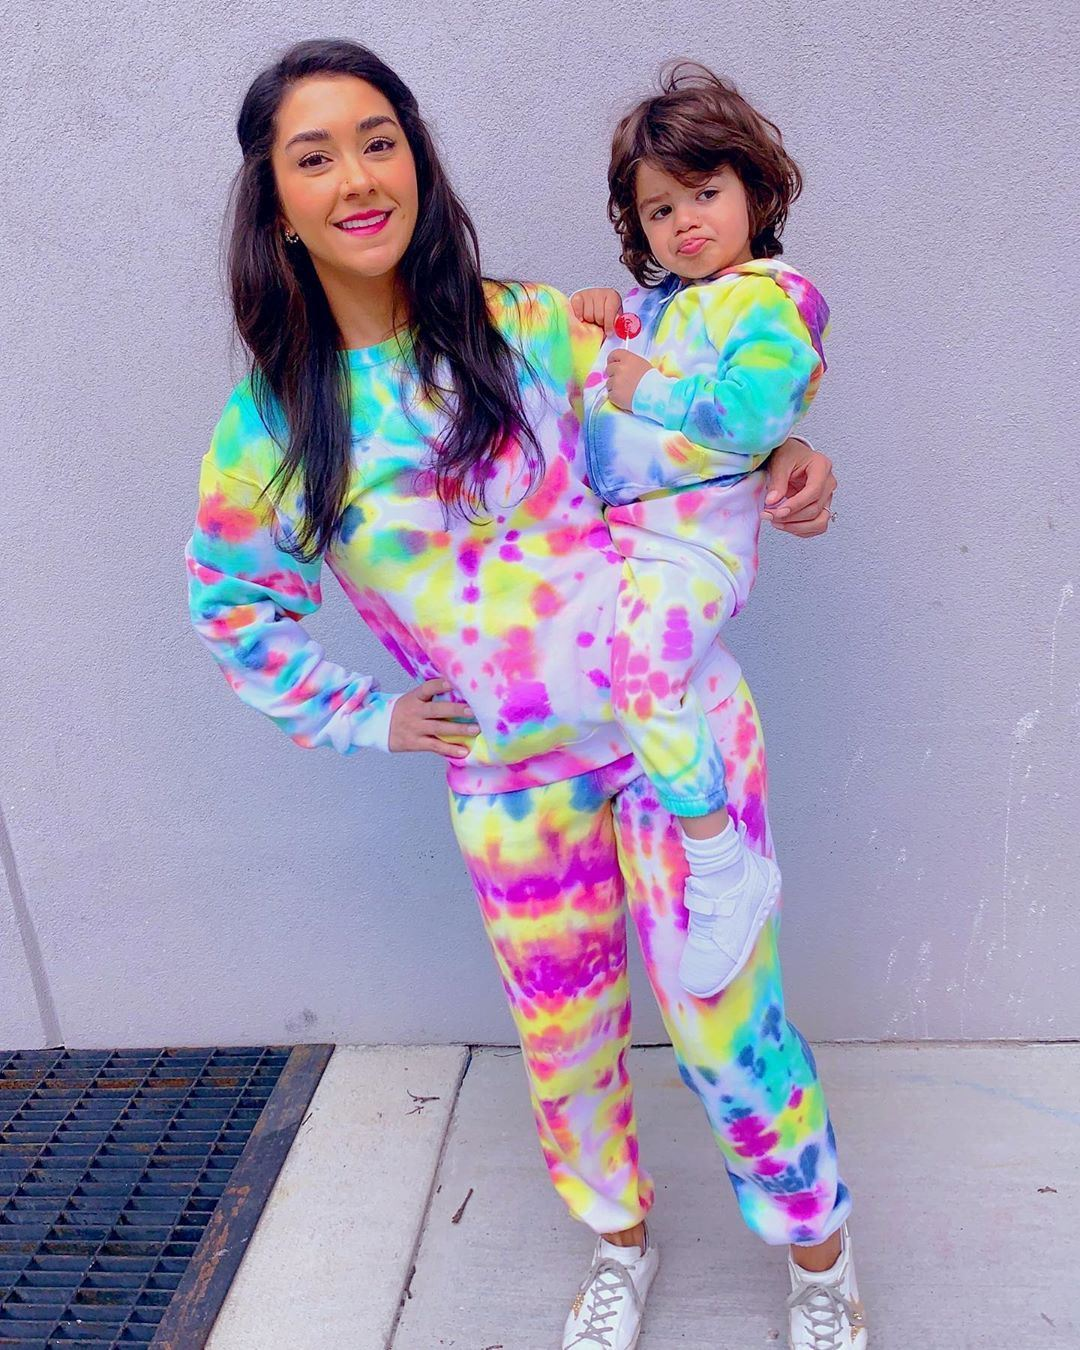 Neon tie-dye sweatsuit from @fashionnanny